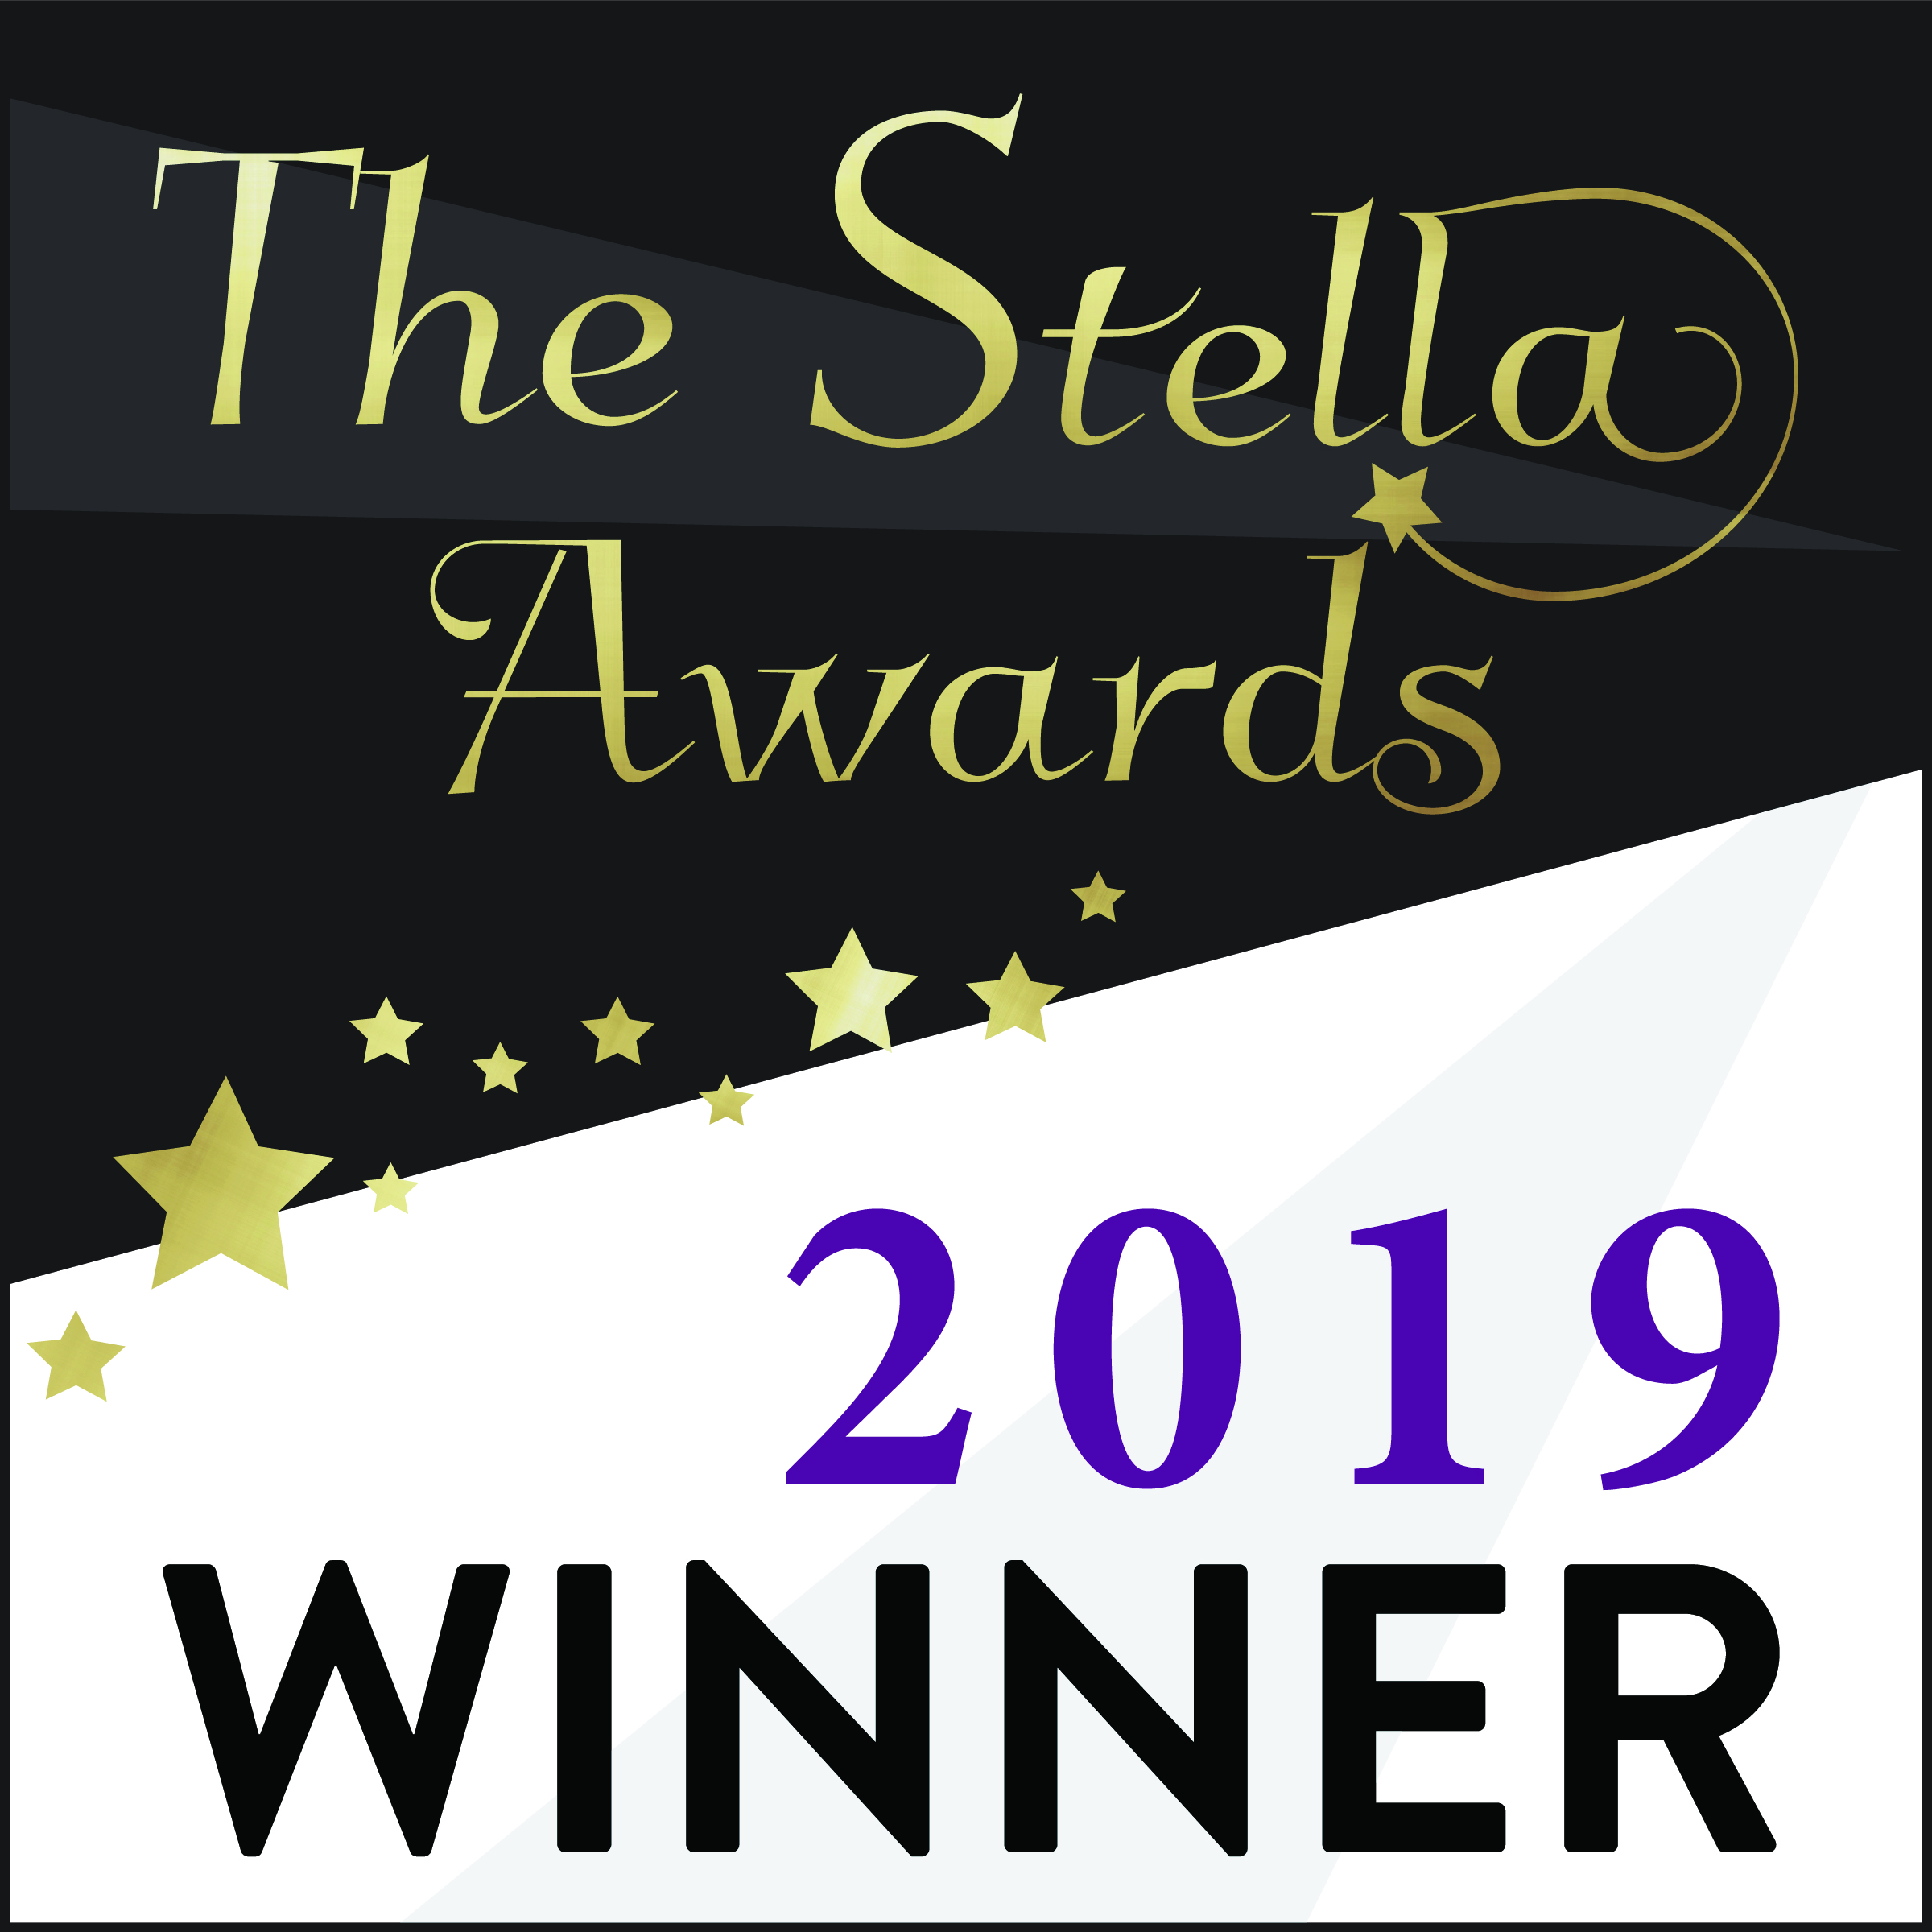 The Stella Awards Winner 2019